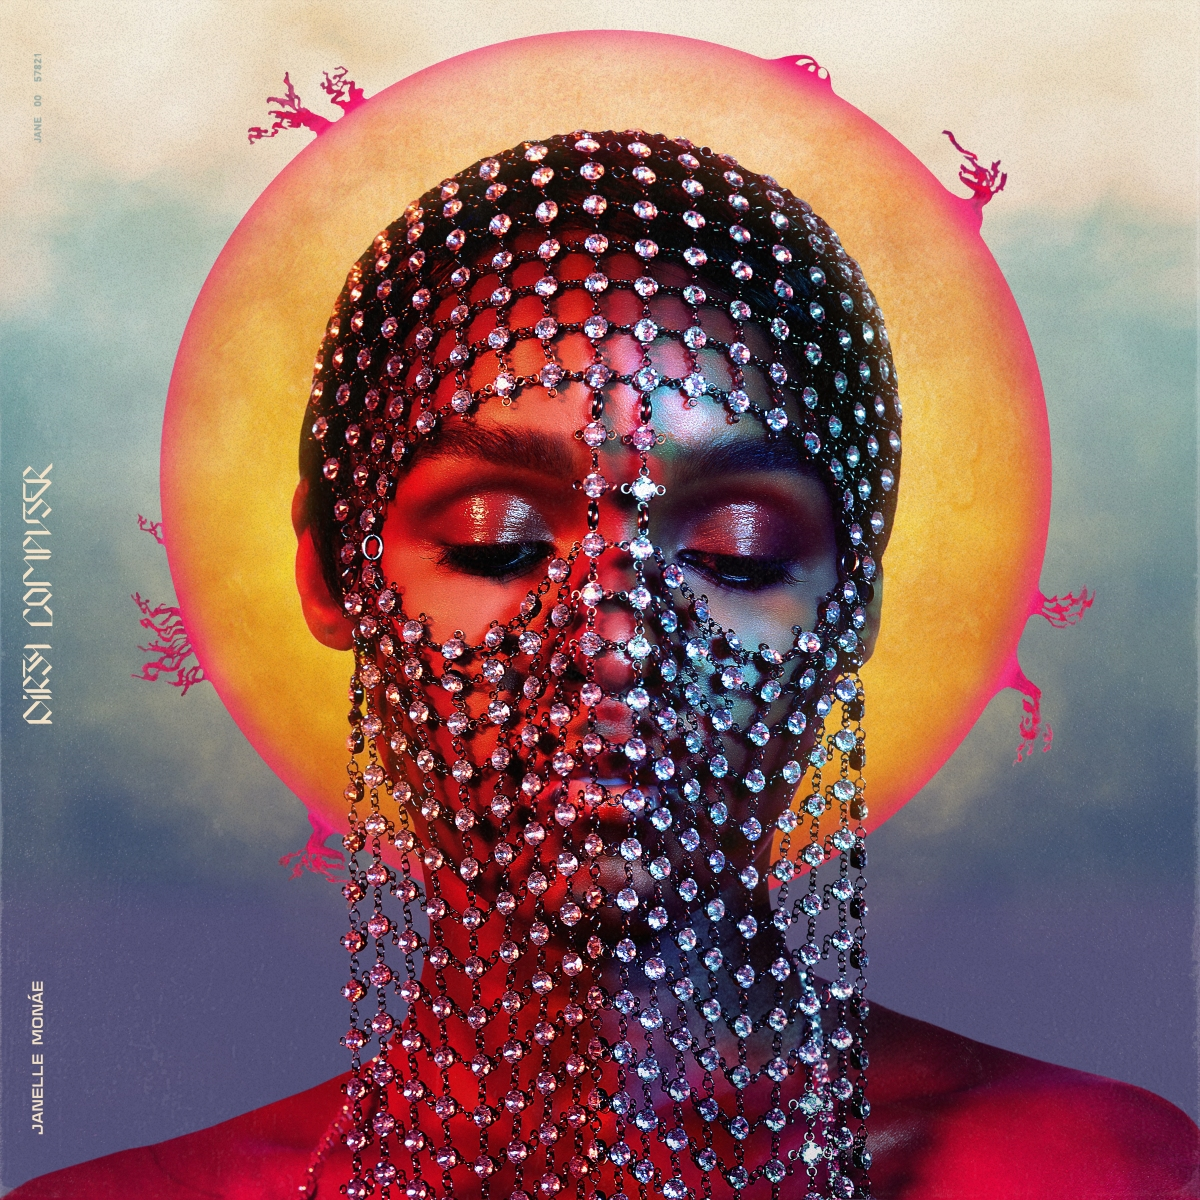 Janelle Monáe: Black Girl Magic